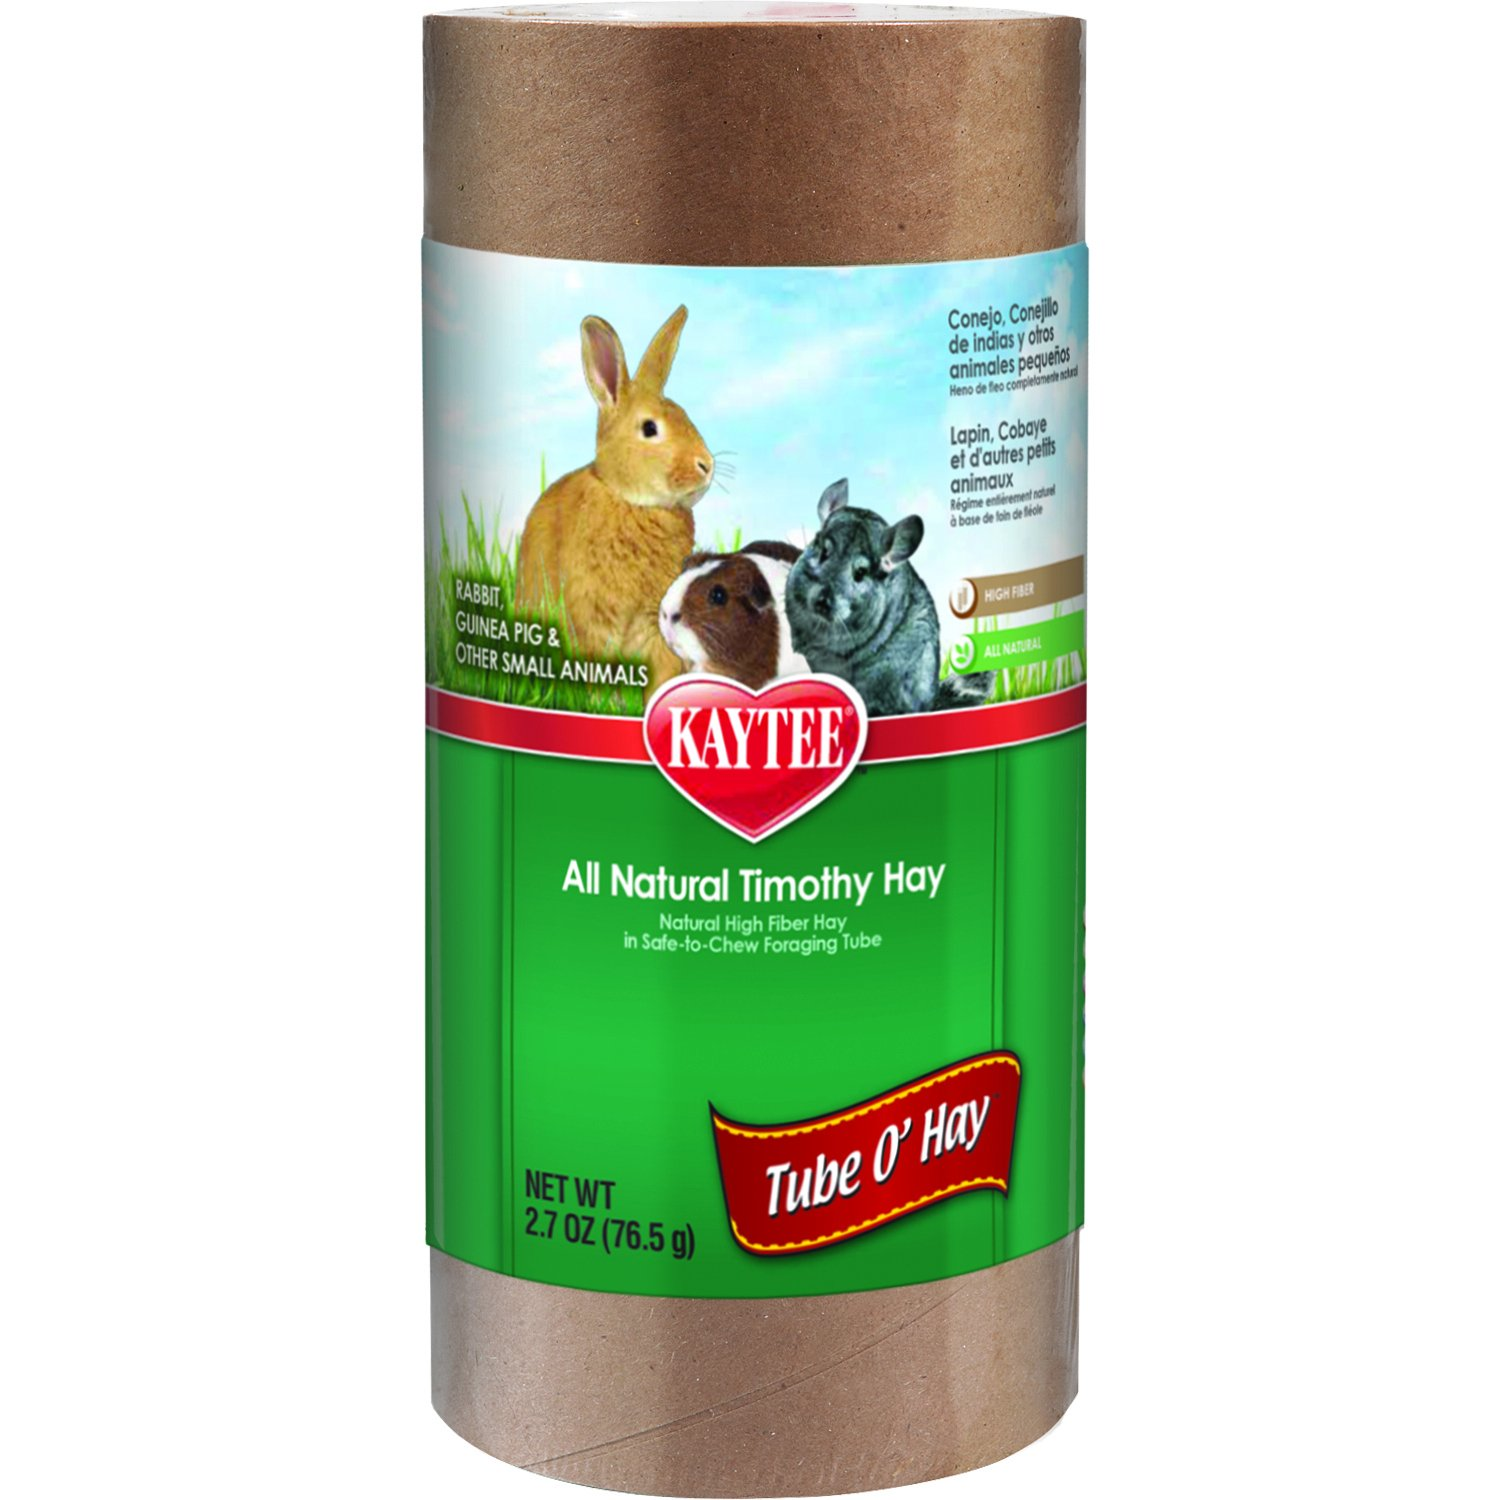 Kaytee Tube O' Hay Medium 4-Inch Treat, 2.7-oz tube